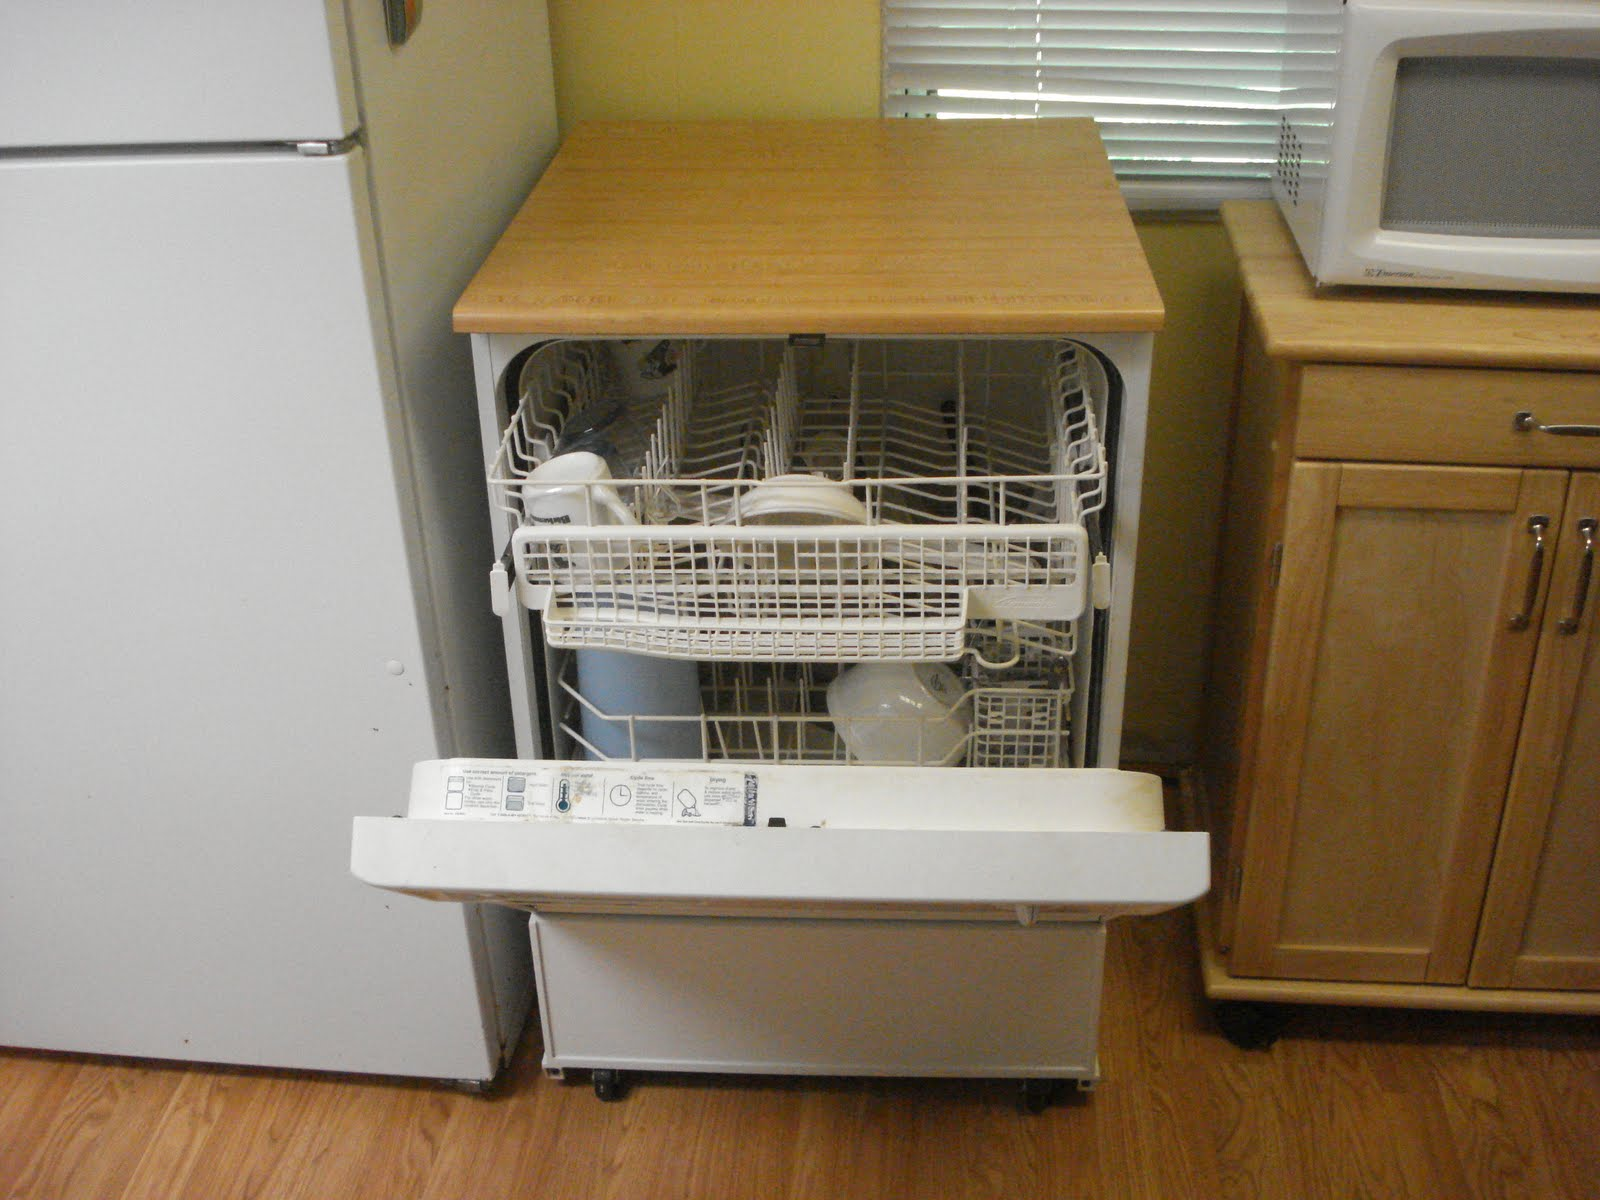 *SOLD* Portable Dishwasher On Wheels....$75.00